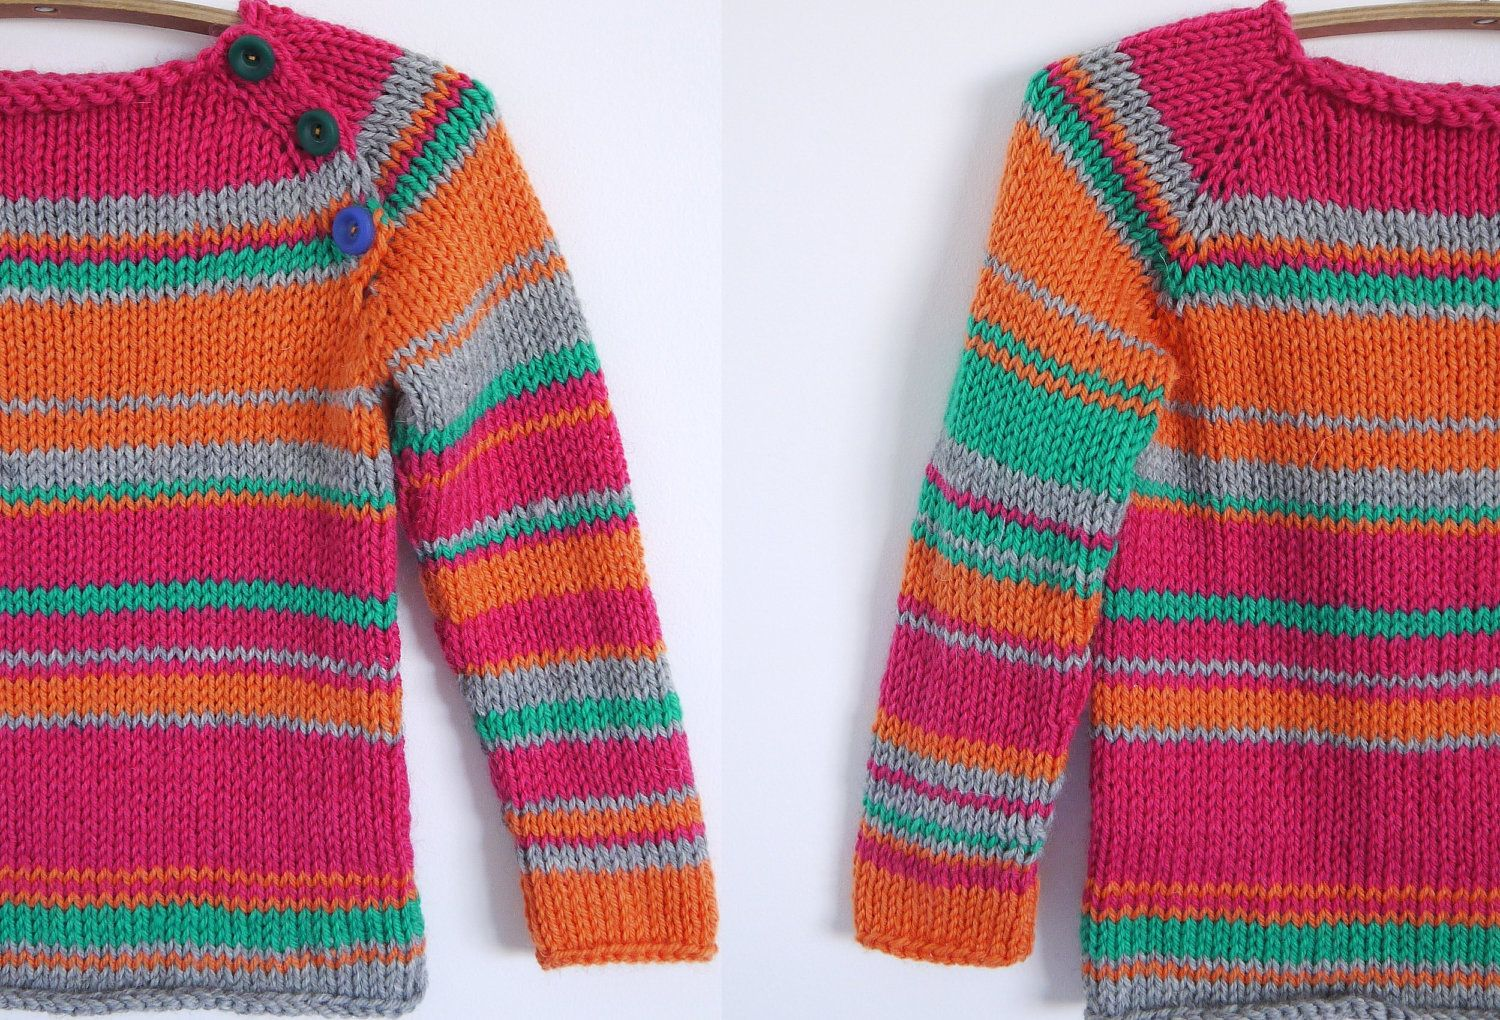 Girls Knitted Sweater Blocks And Stripes Jumper Fits 3 5 Year